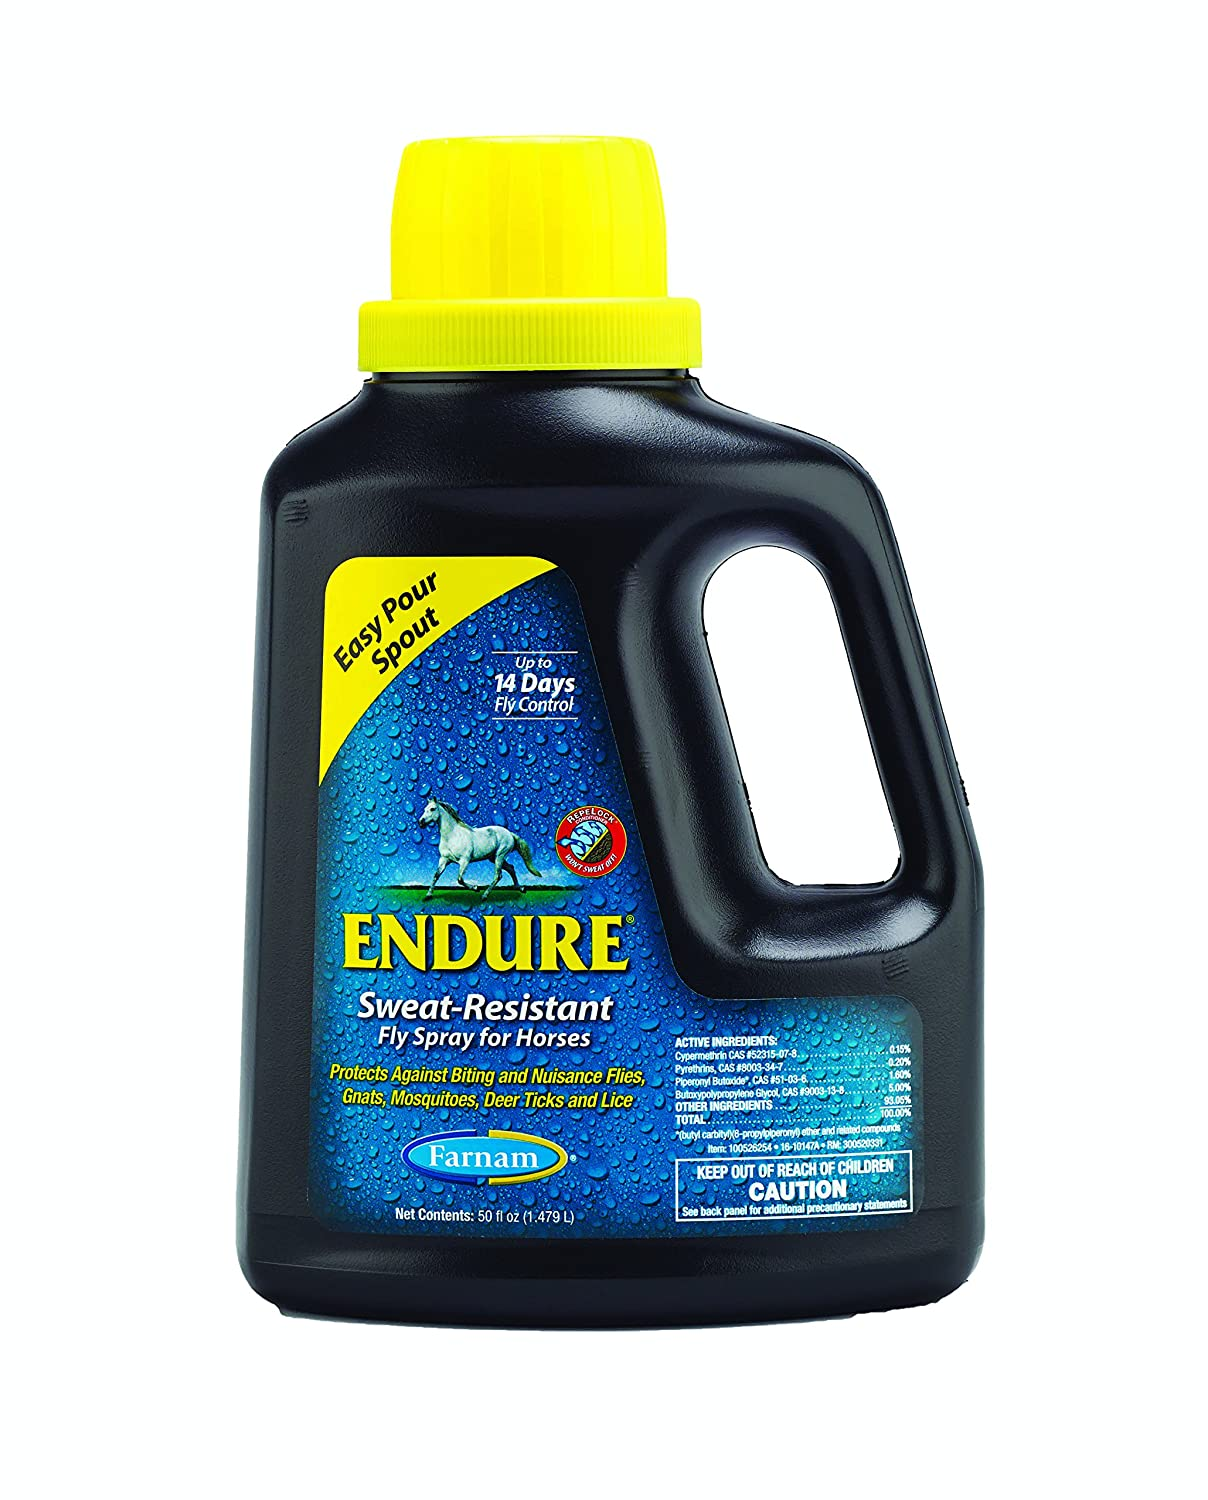 Farnam Endure Sweat-Resistant Fly Repellents for Horses